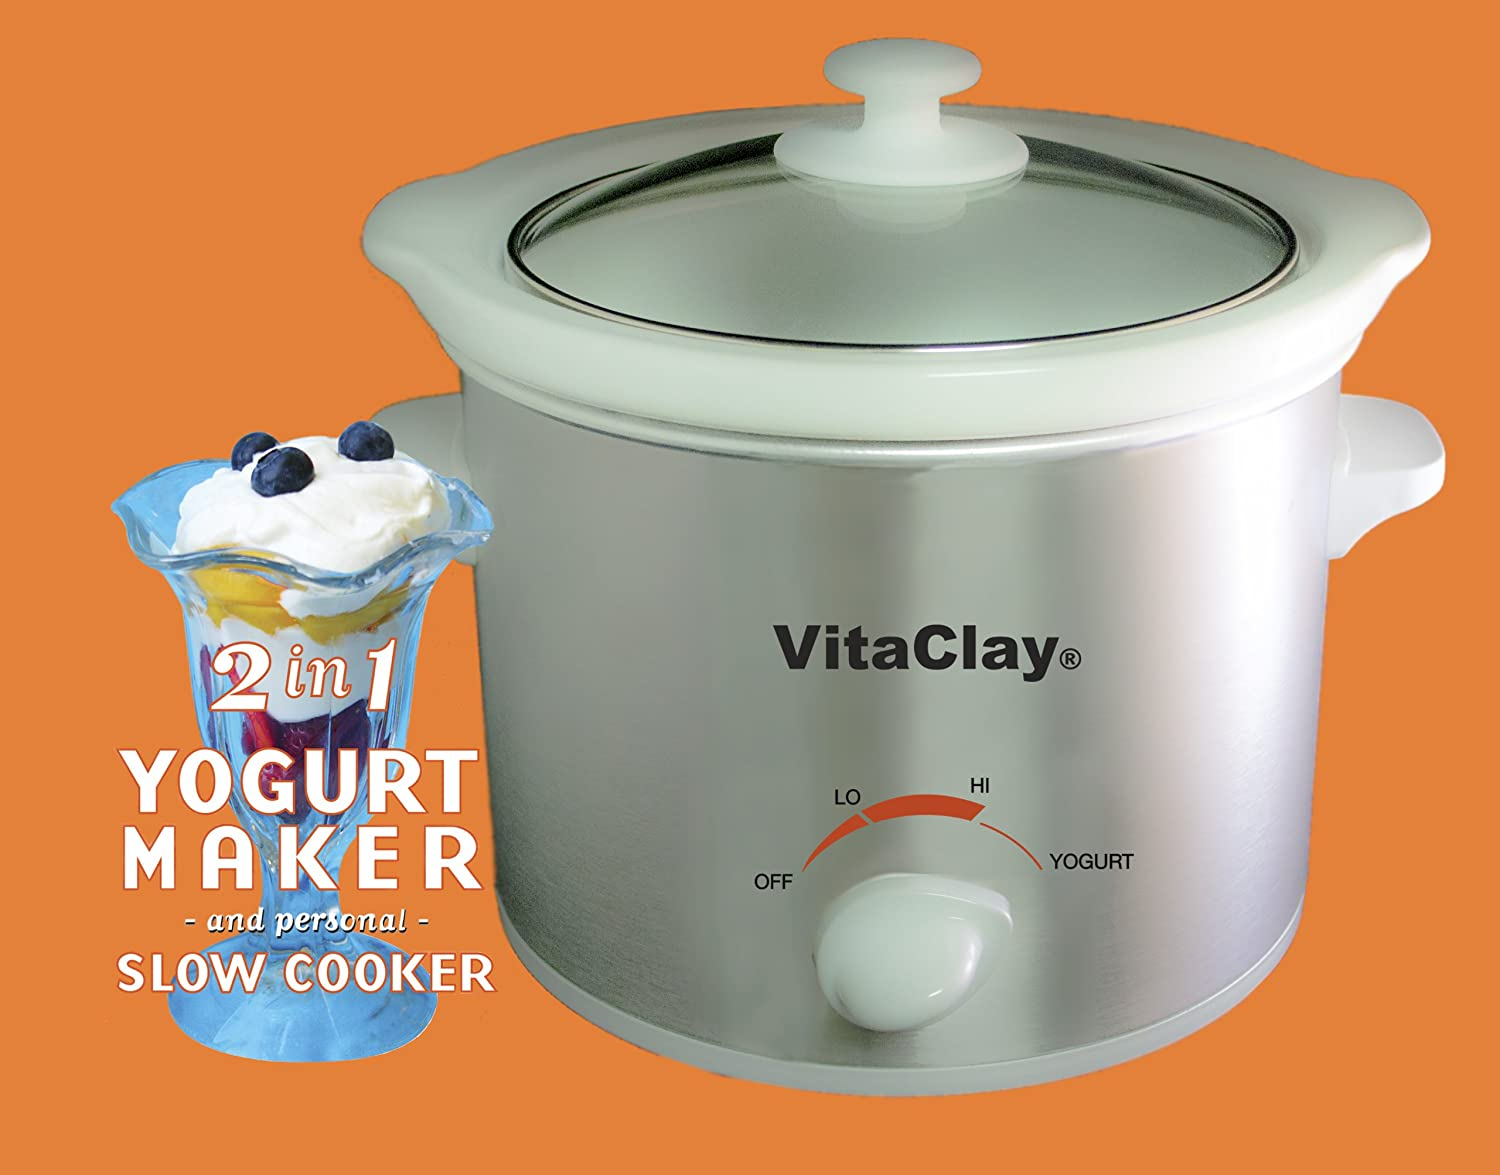 VitaClay VS7600-2 Stoneware Yogurt Maker and Slow Cooker, 64-Ounce, Stainless Steel